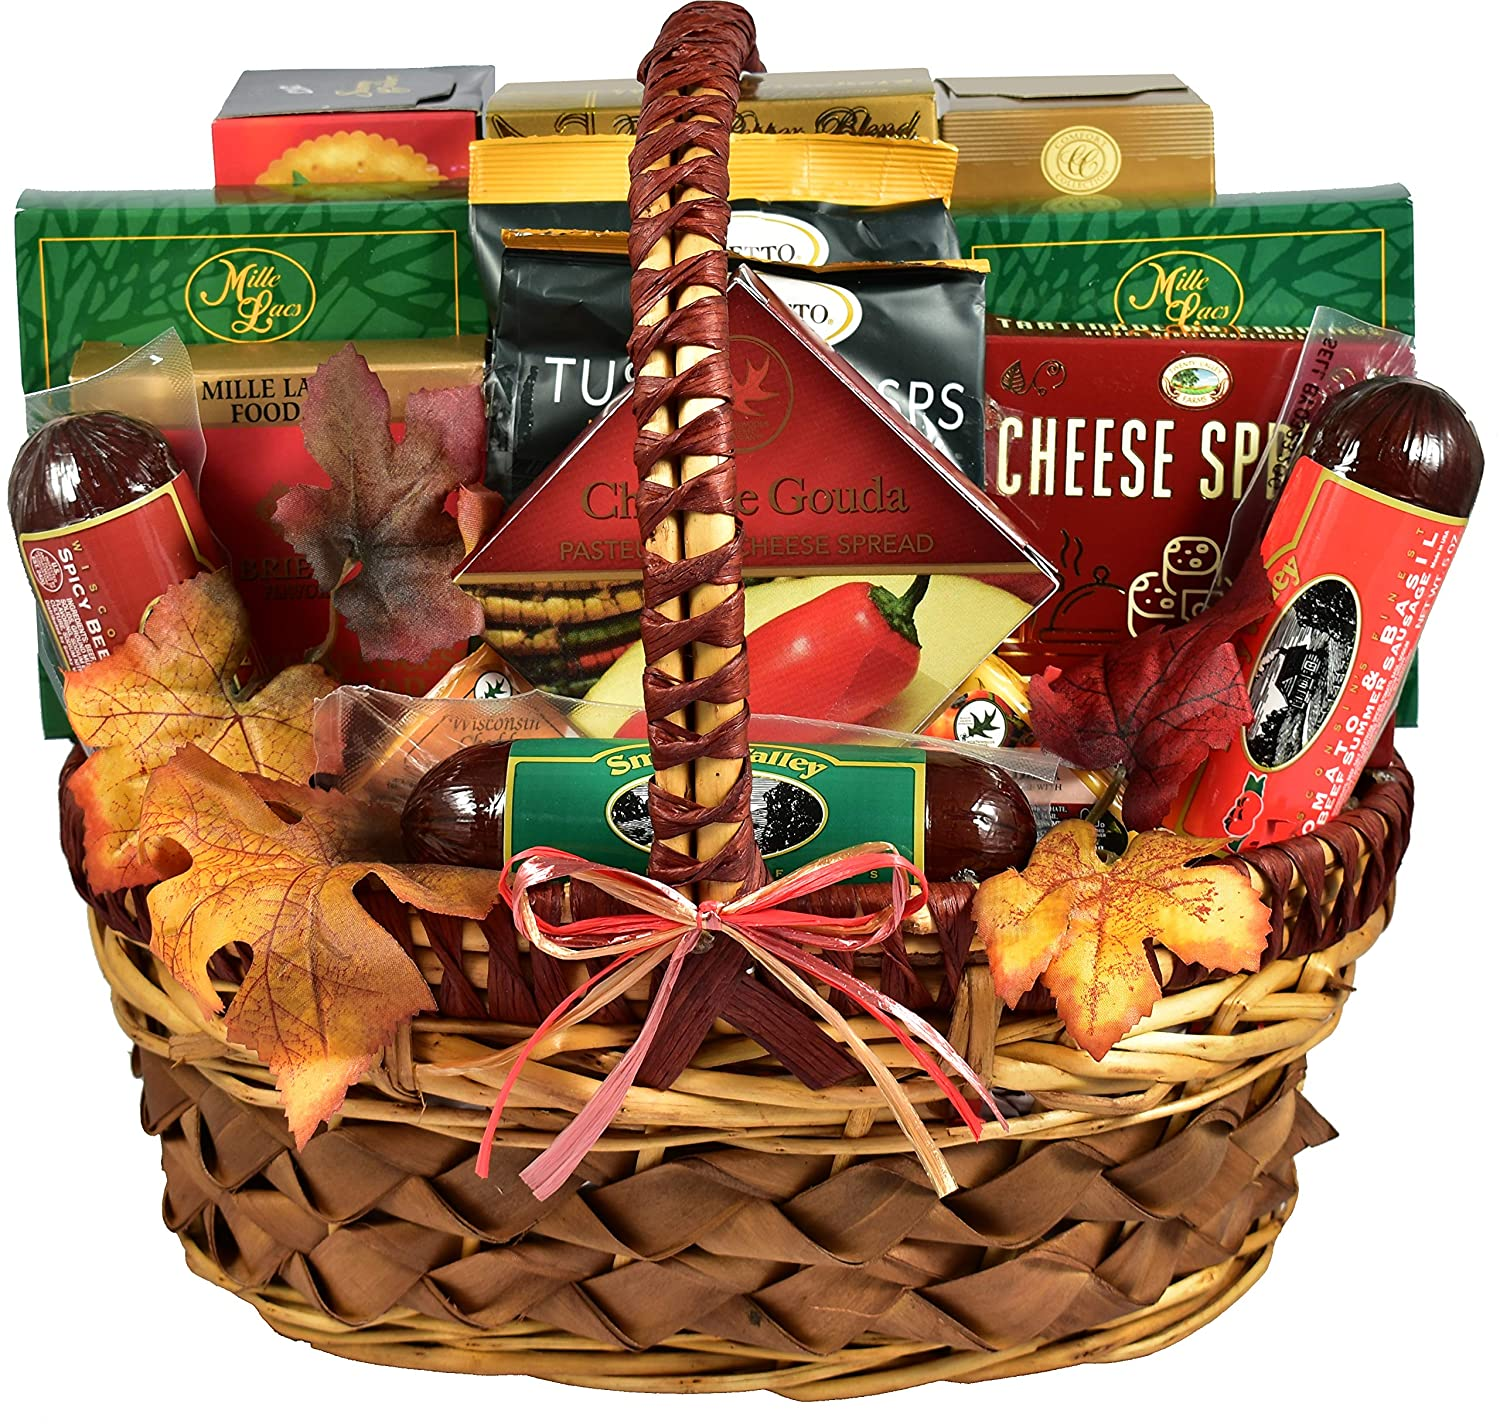 Gift Basket Village - A Cut Above, Fall Cheese and Sausage Gift Basket Loaded With Flavors of the Season (Medium, 7 pound)